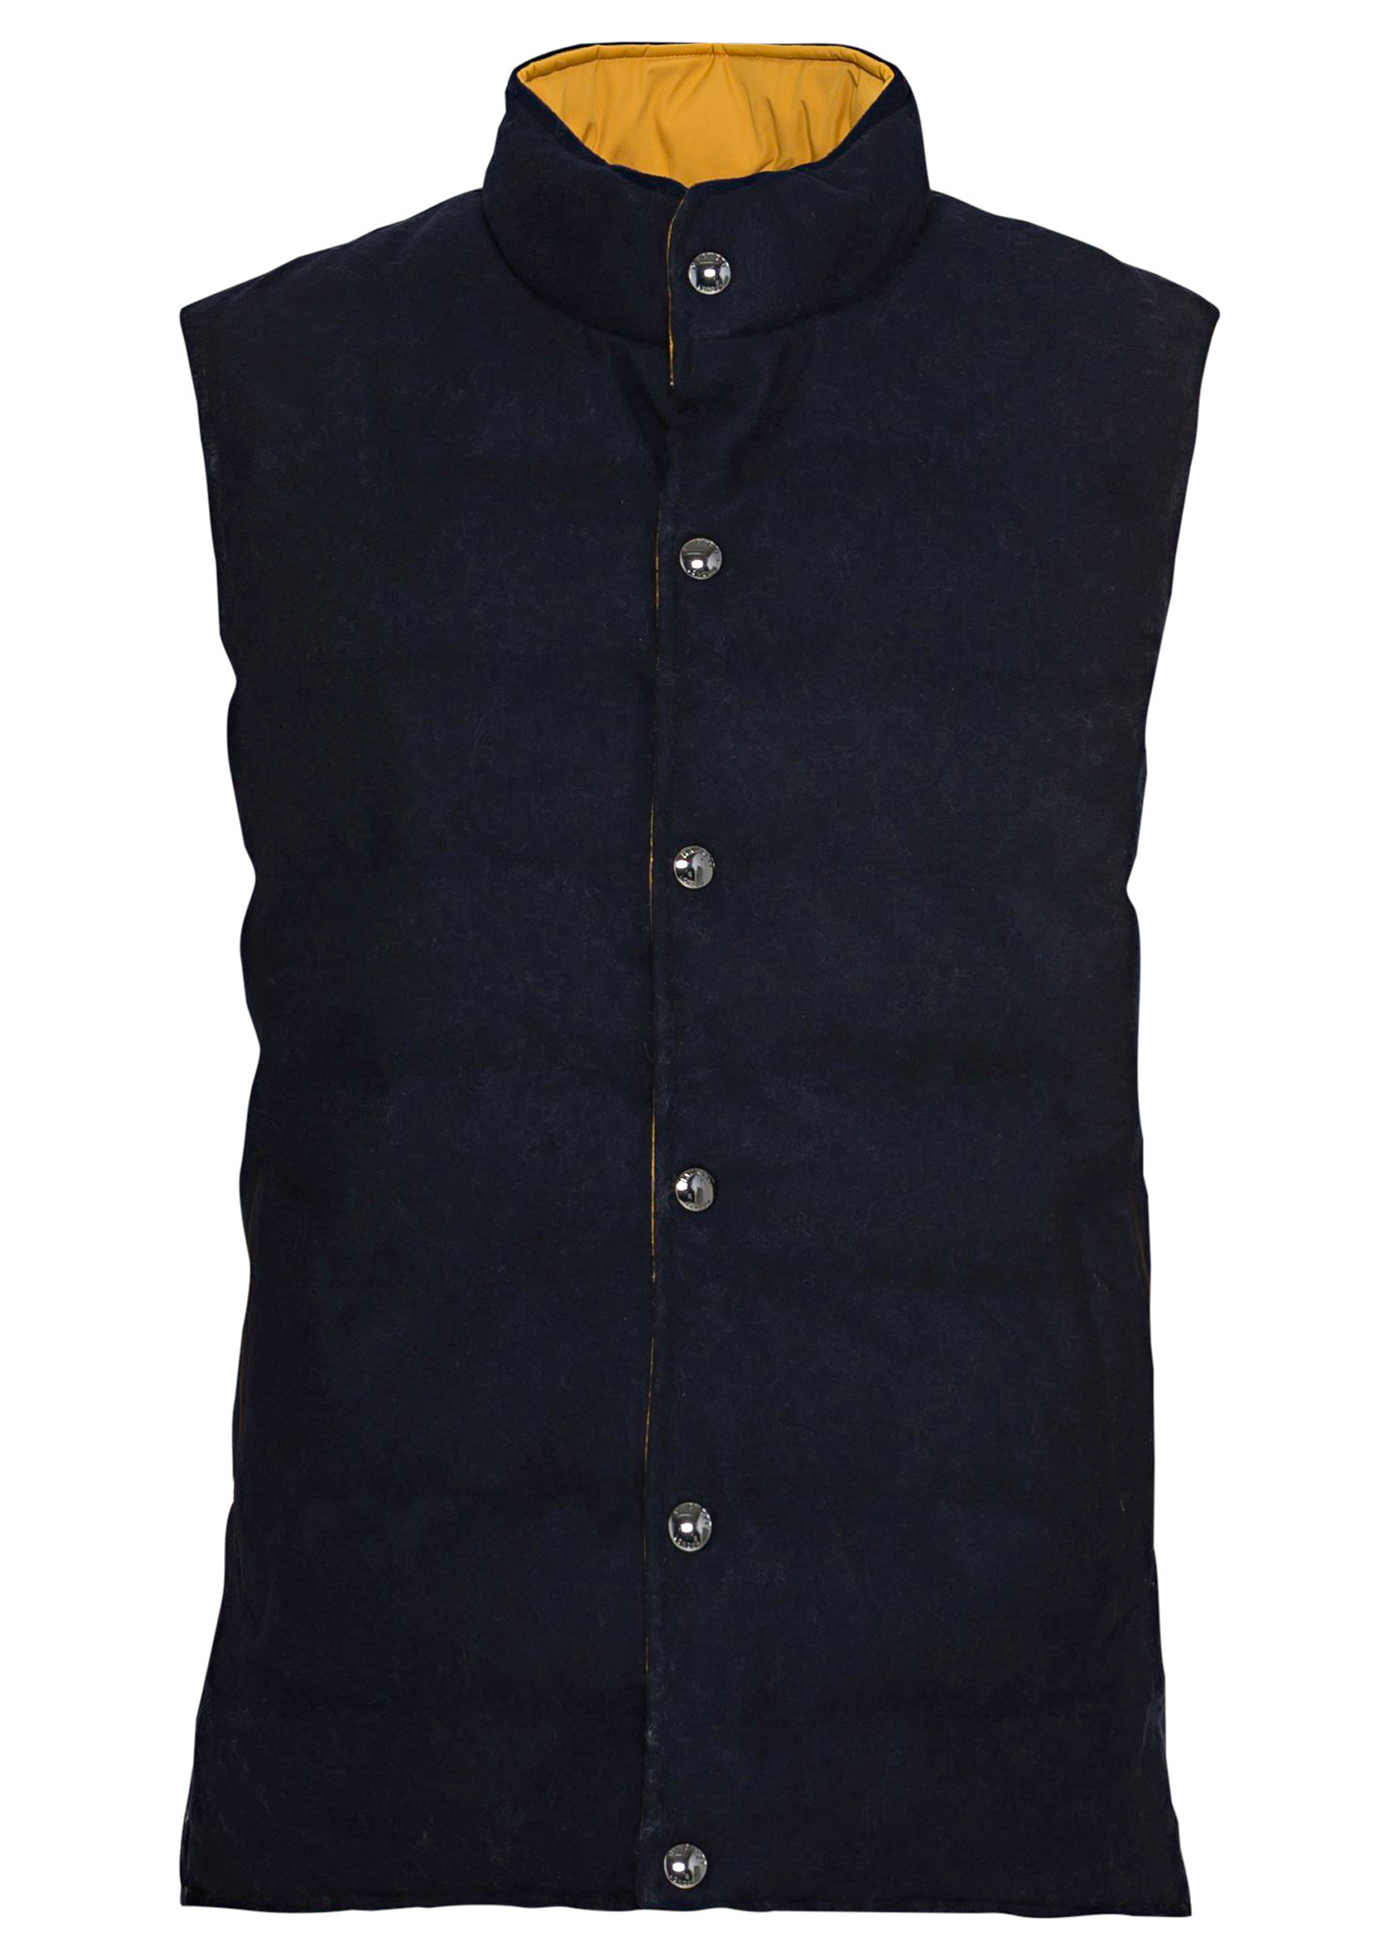 CLASSIC REV GILET image number 0